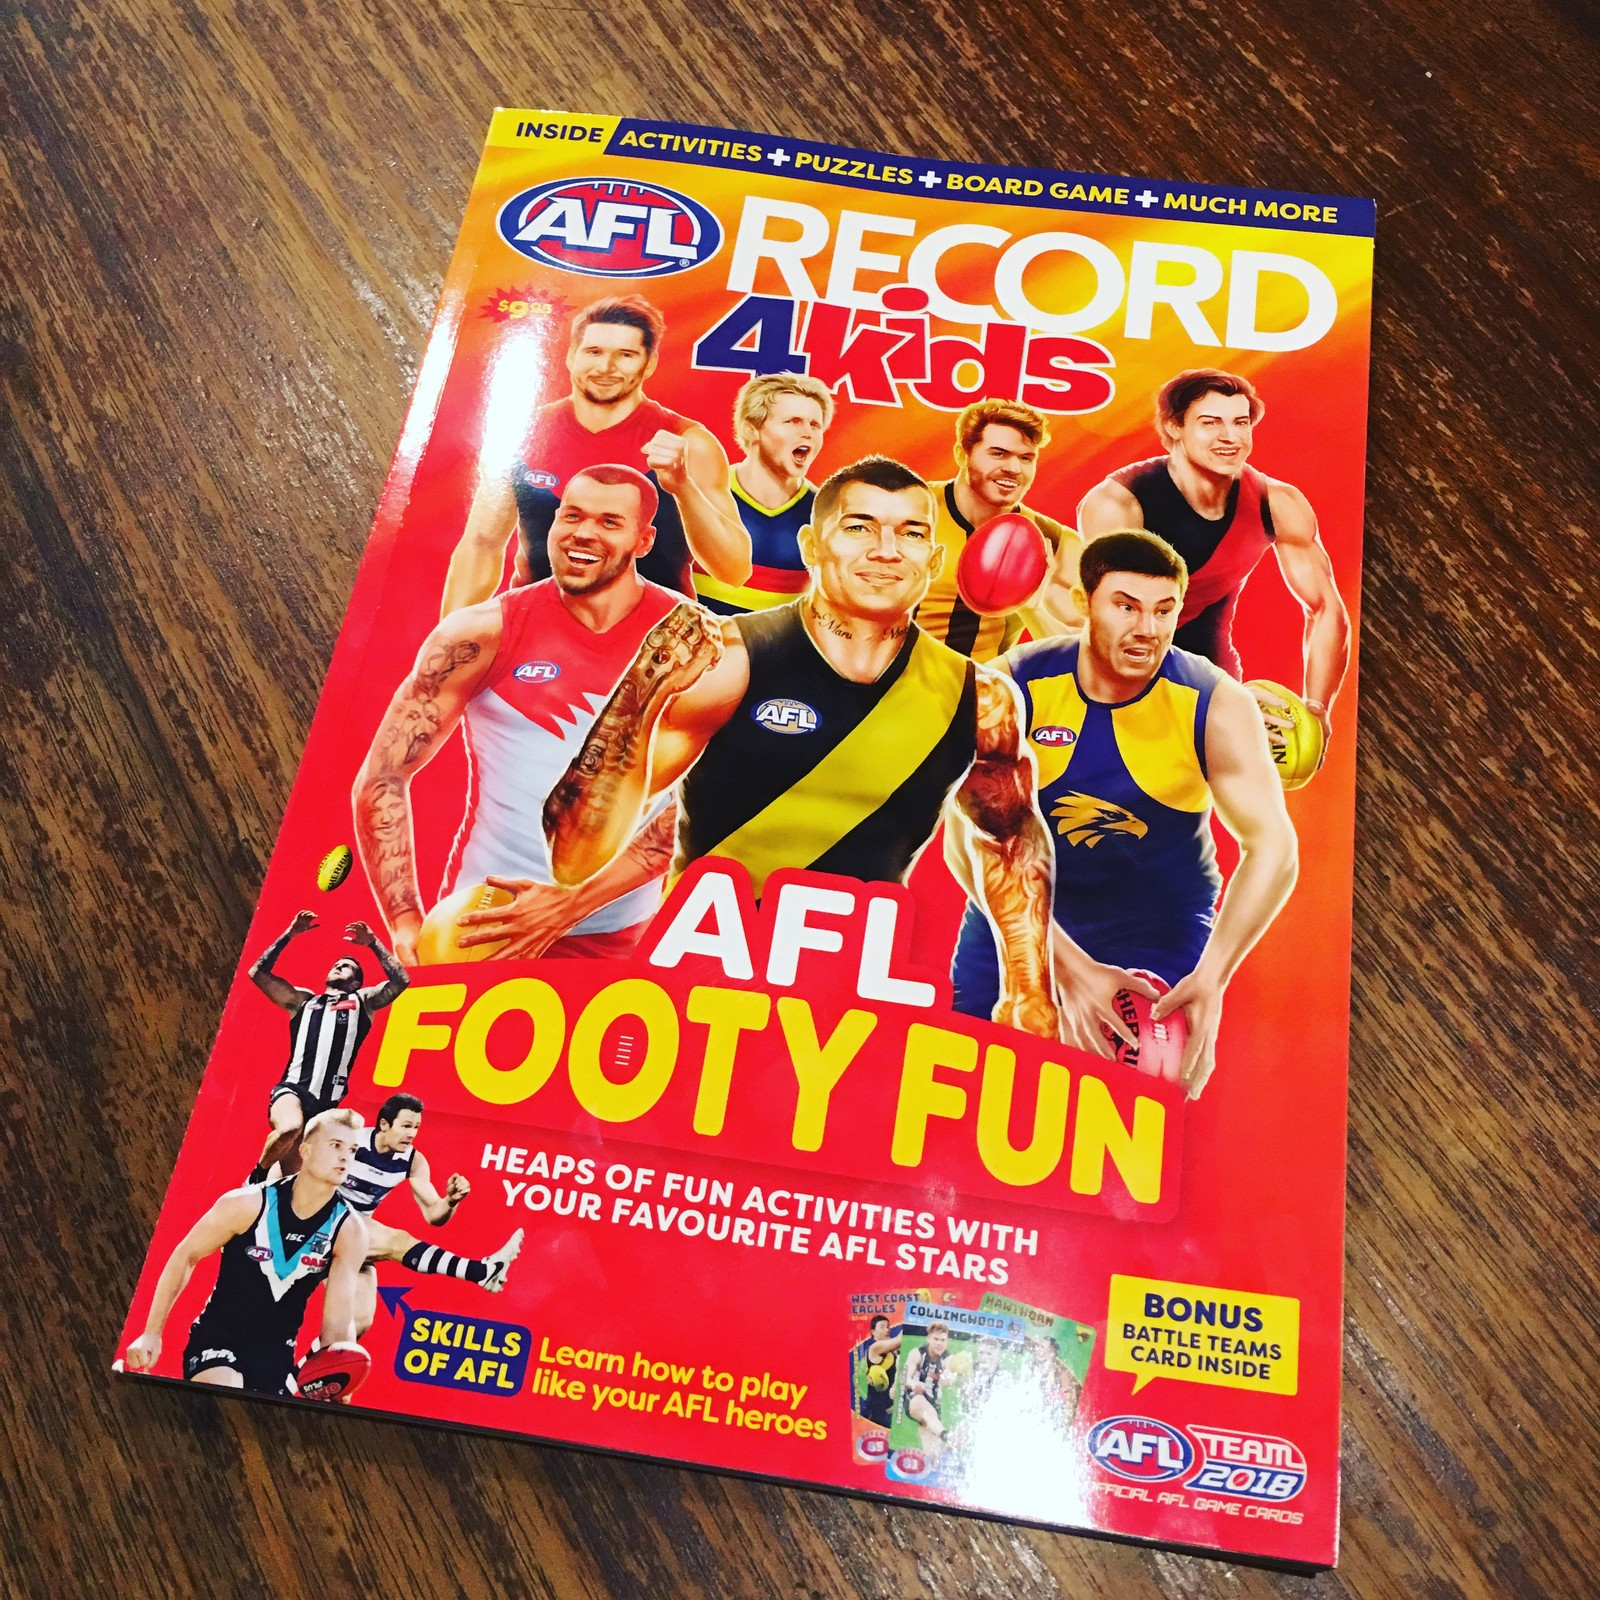 AFL TeamCoach Record4Kids, featuring Star Wild Card artworks